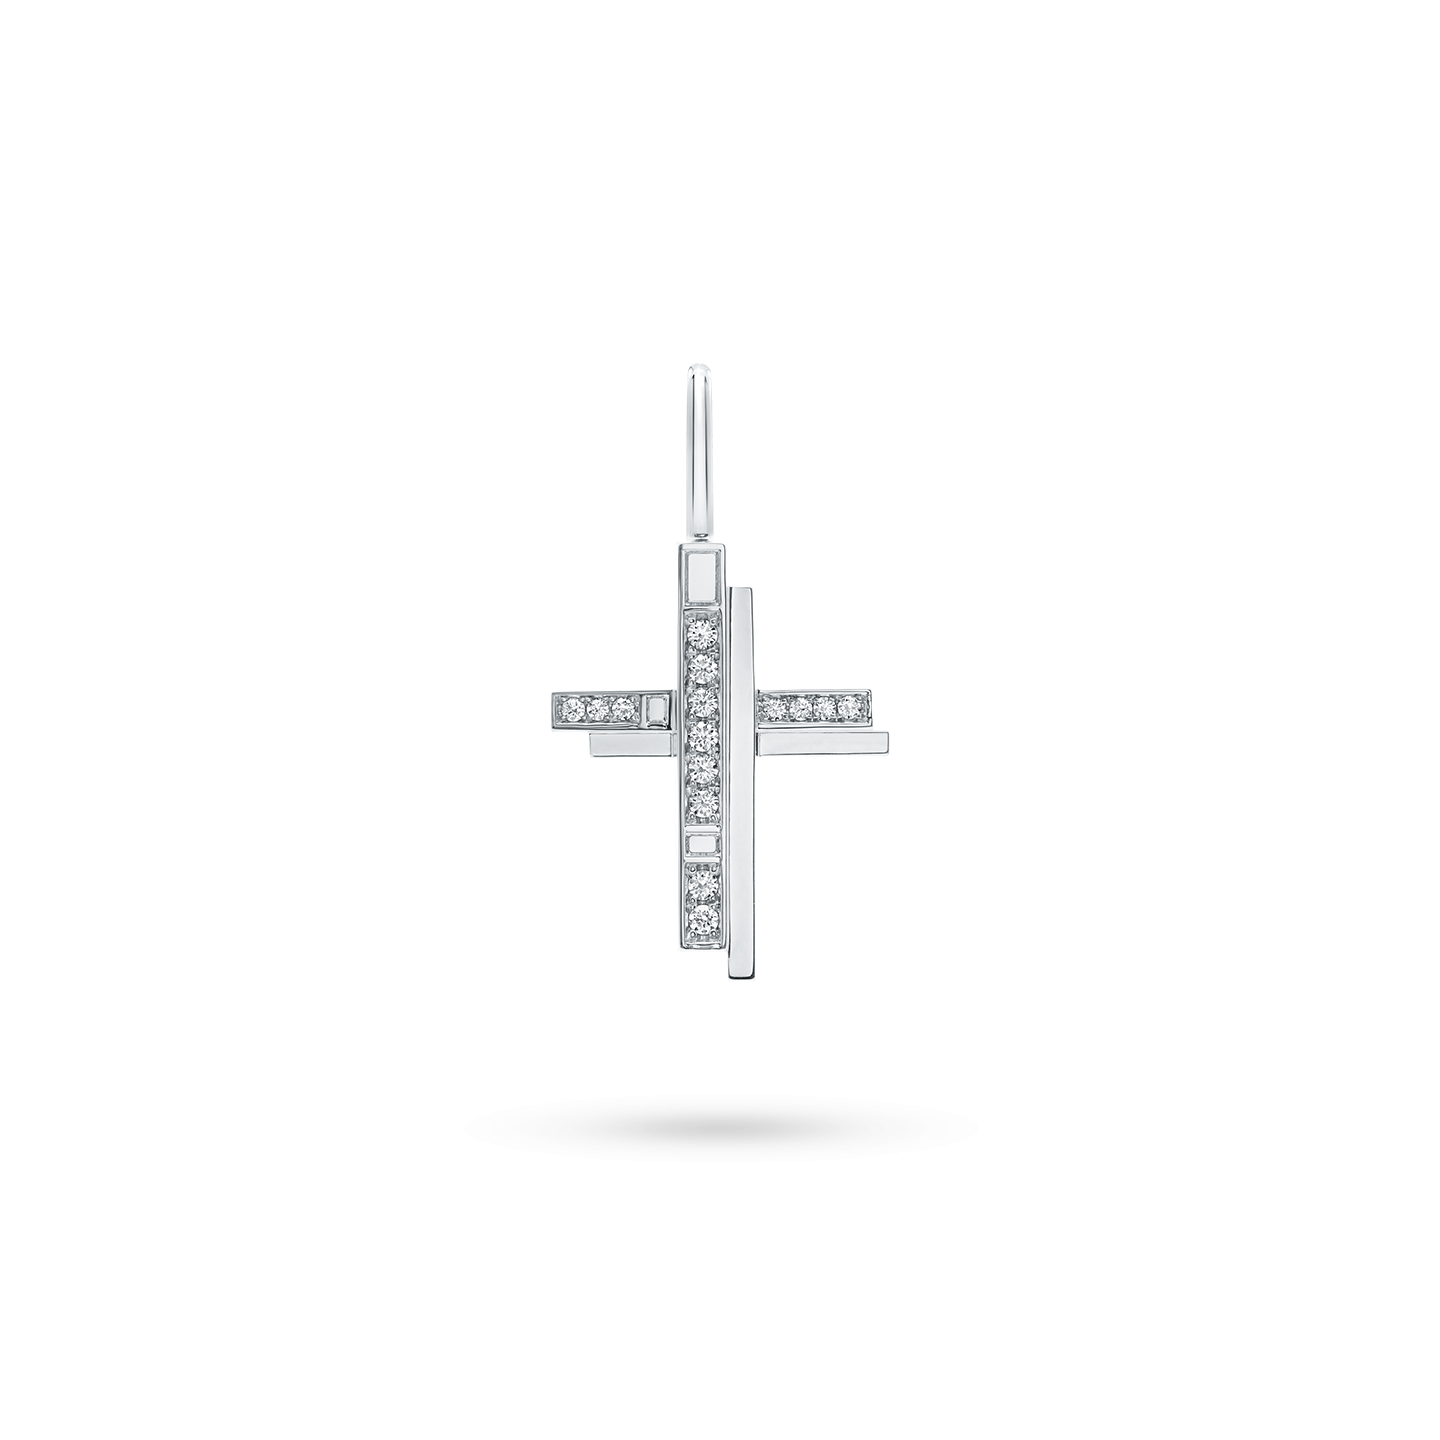 TrafficCross Charm in Platinum, Product Image 1